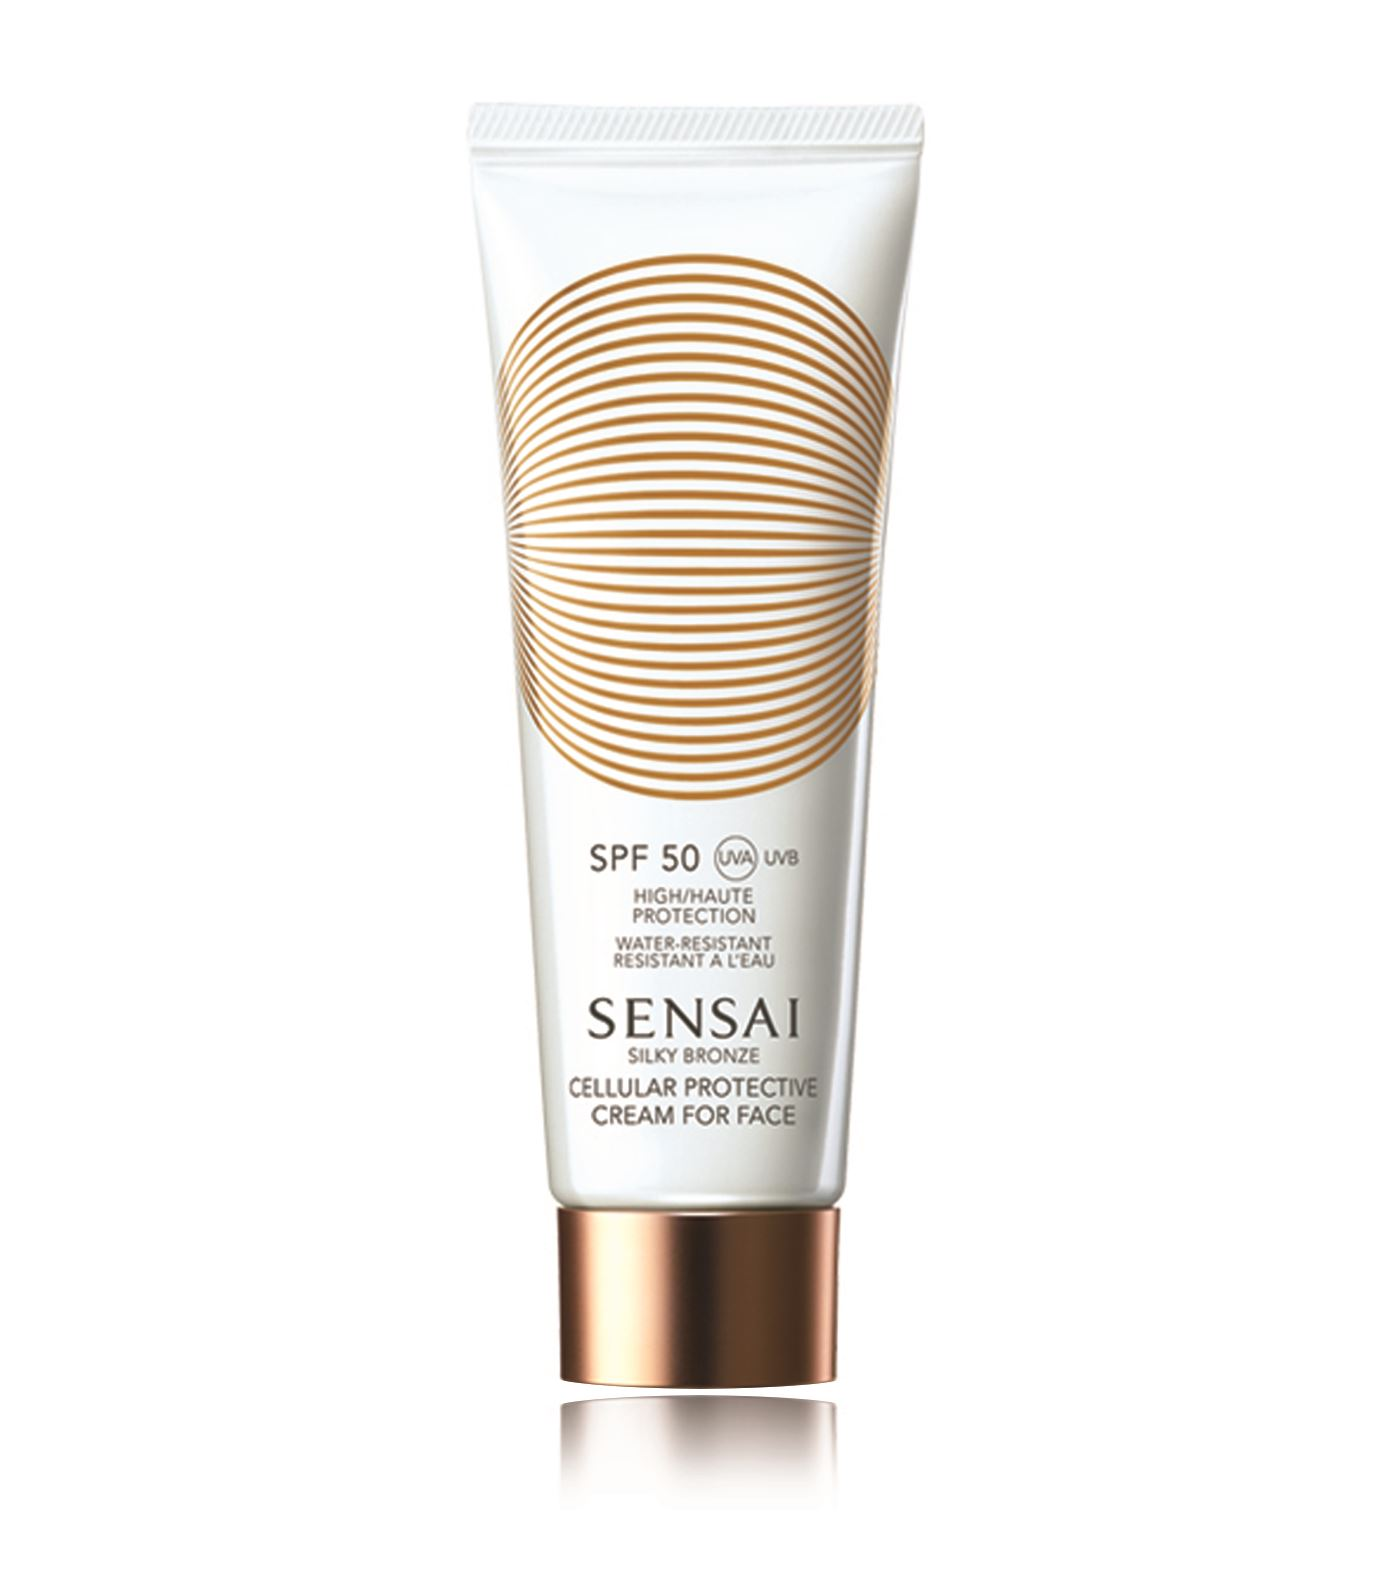 Kanebo Sensai Cellular Protective Cream For Face Spf50 50ml kosmētika ķermenim